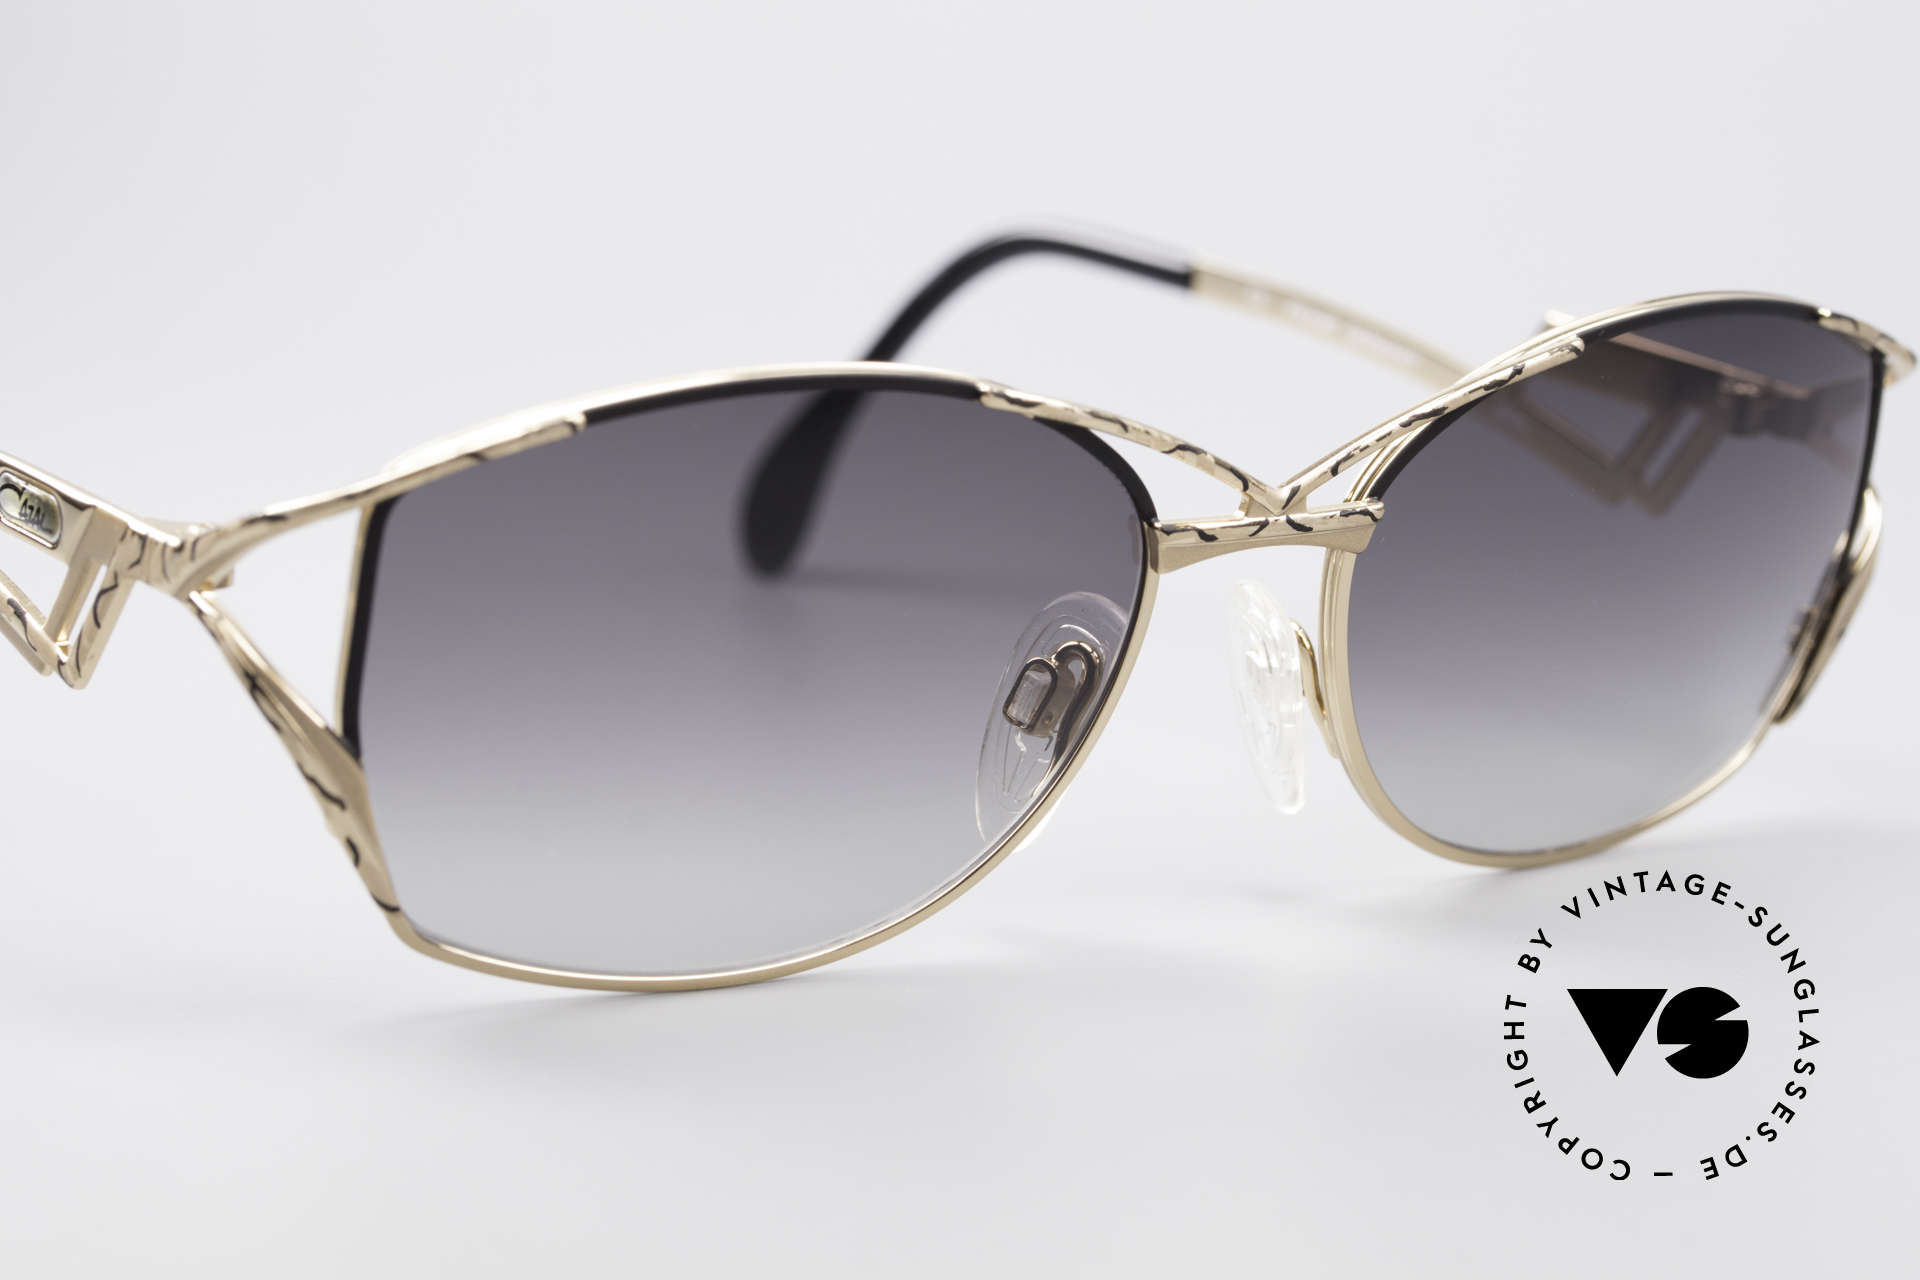 Cazal 284 Luxury Vintage Sunglasses 90's, UNWORN 'made in Germany' glasses in size 56-17, Made for Women